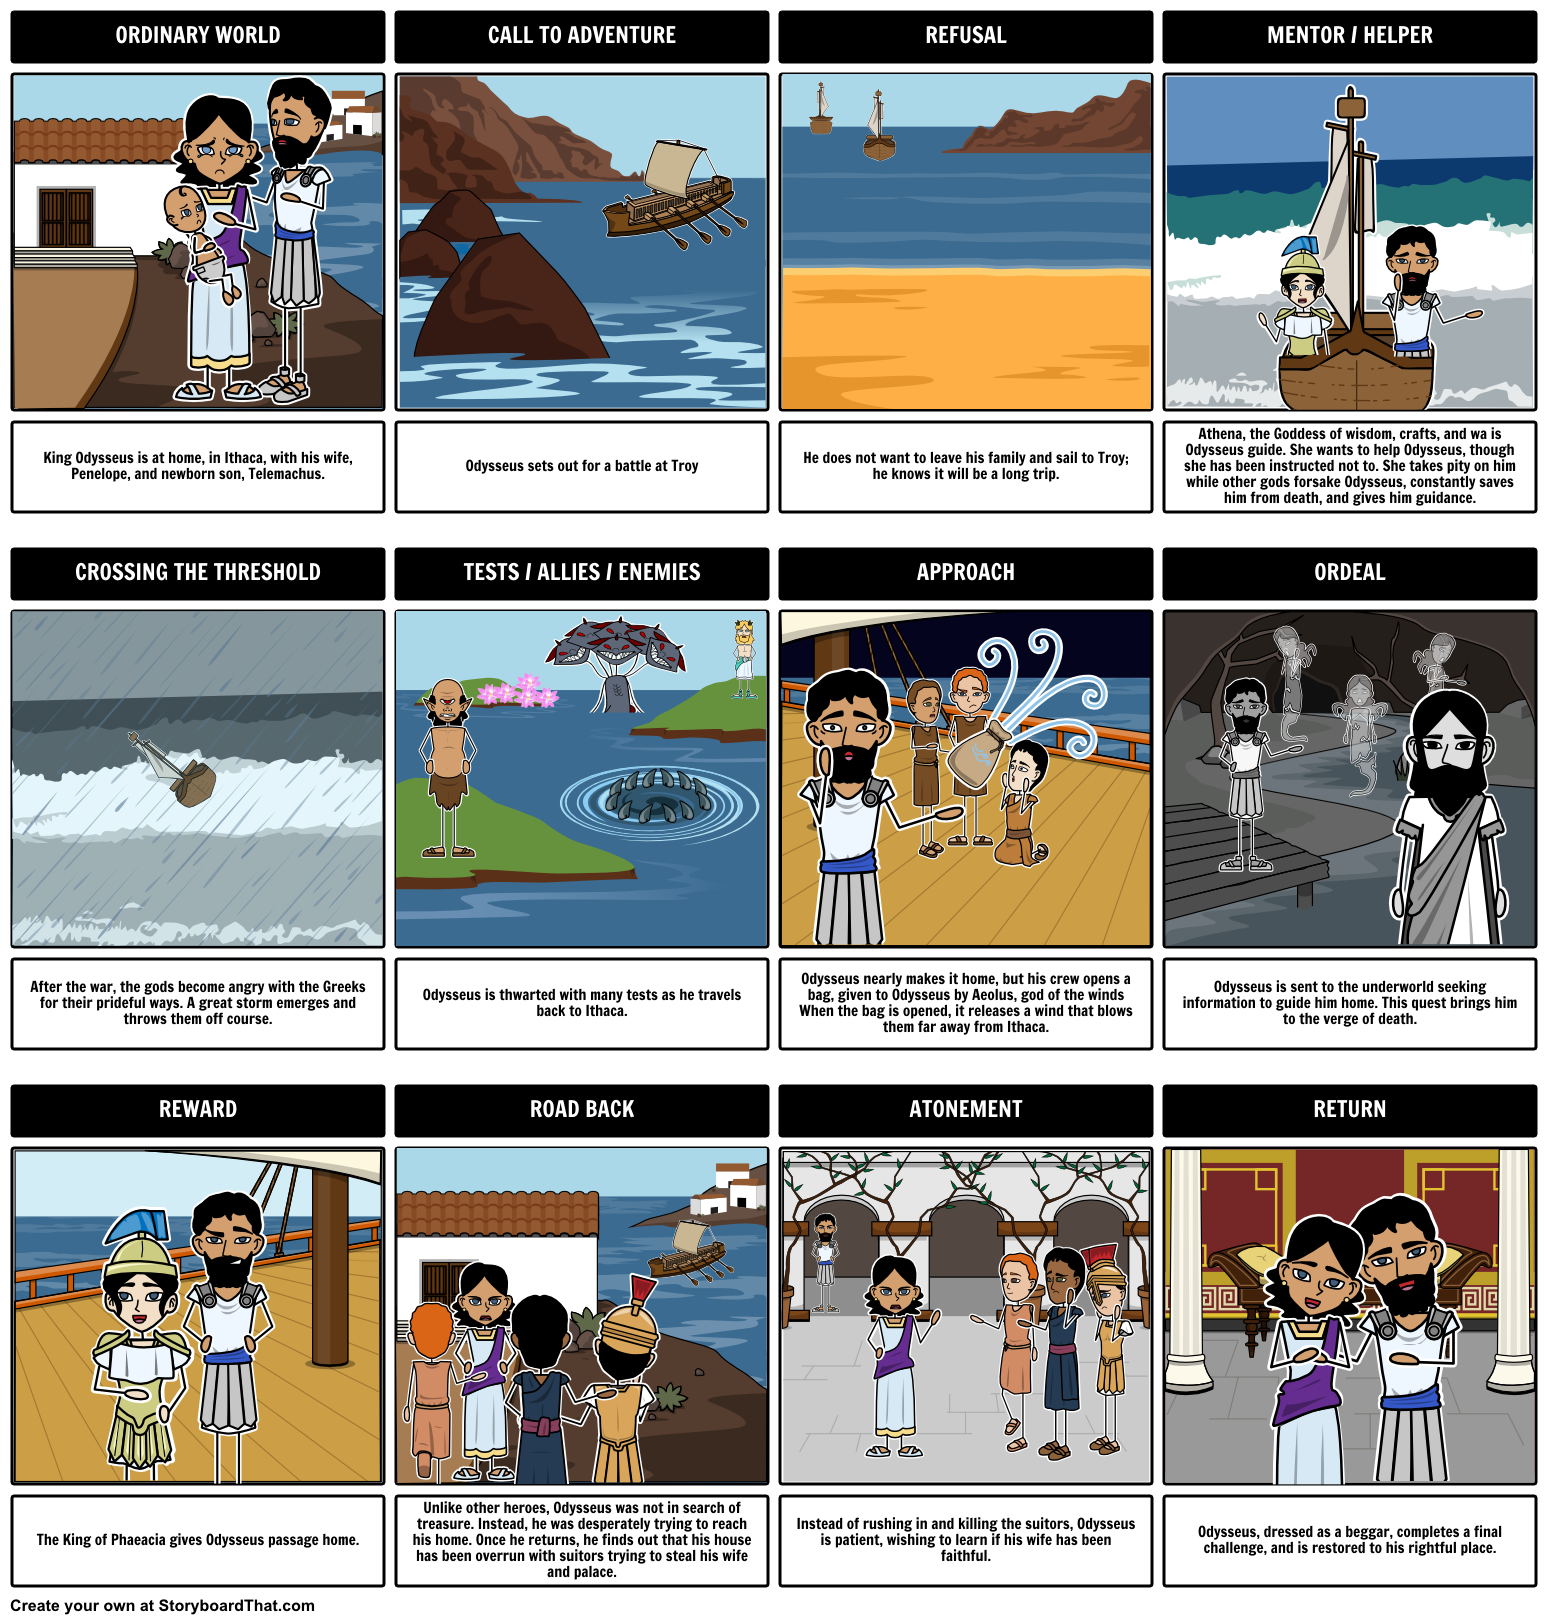 build a colorful hero s journey diagram using storyboard that for the odyssey view the full [ 1548 x 1623 Pixel ]